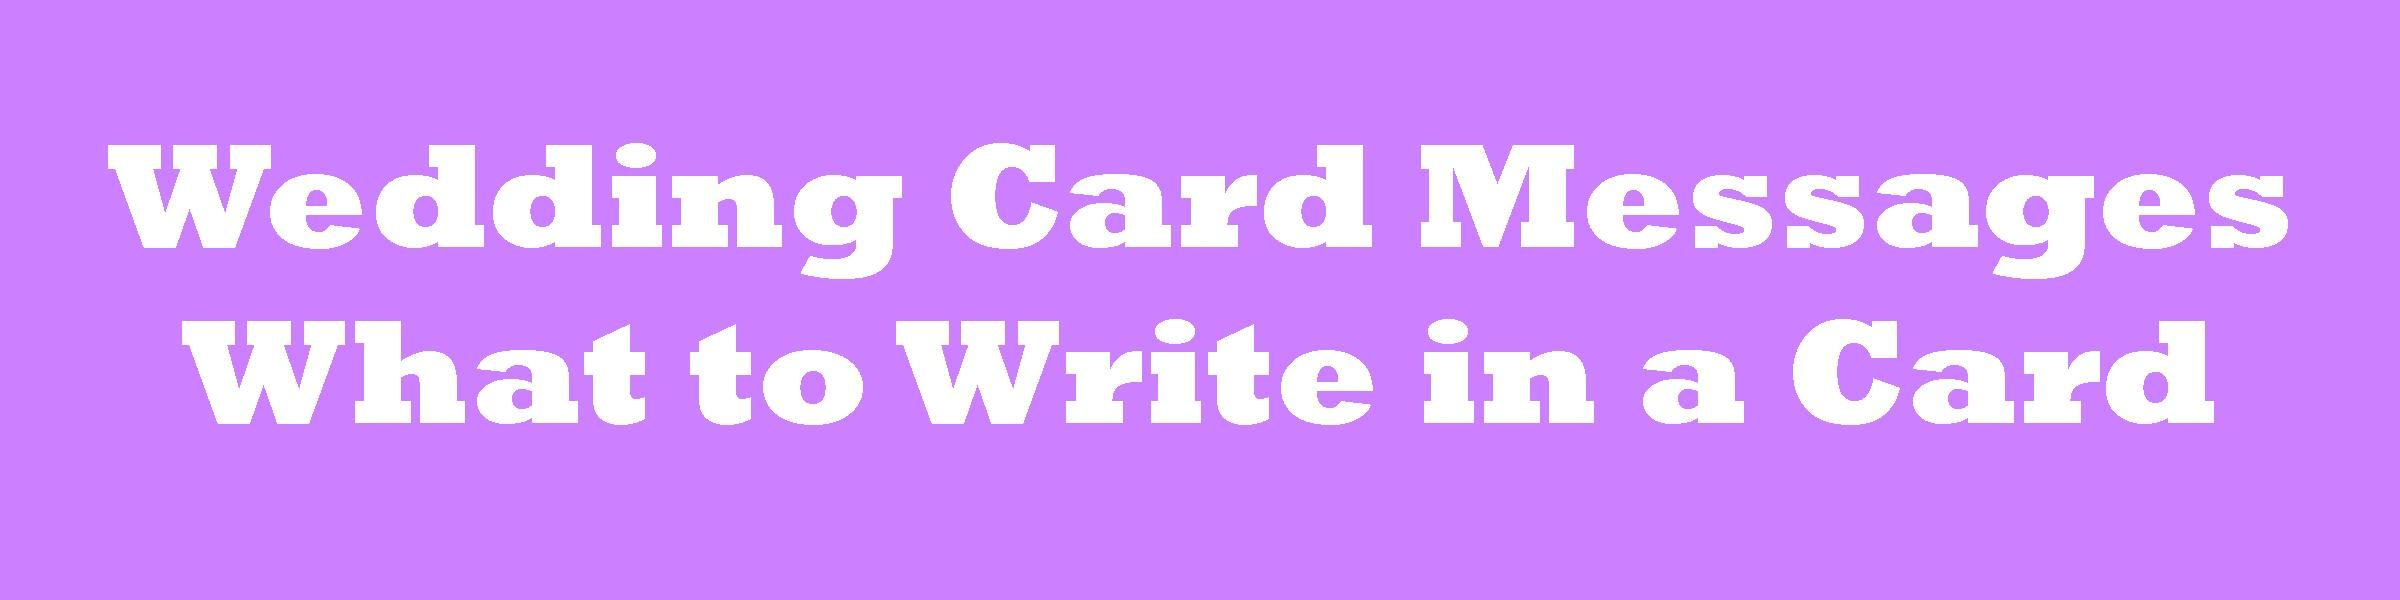 What to write in a wedding card - Wedding Messages And Quotes To Write In A Card